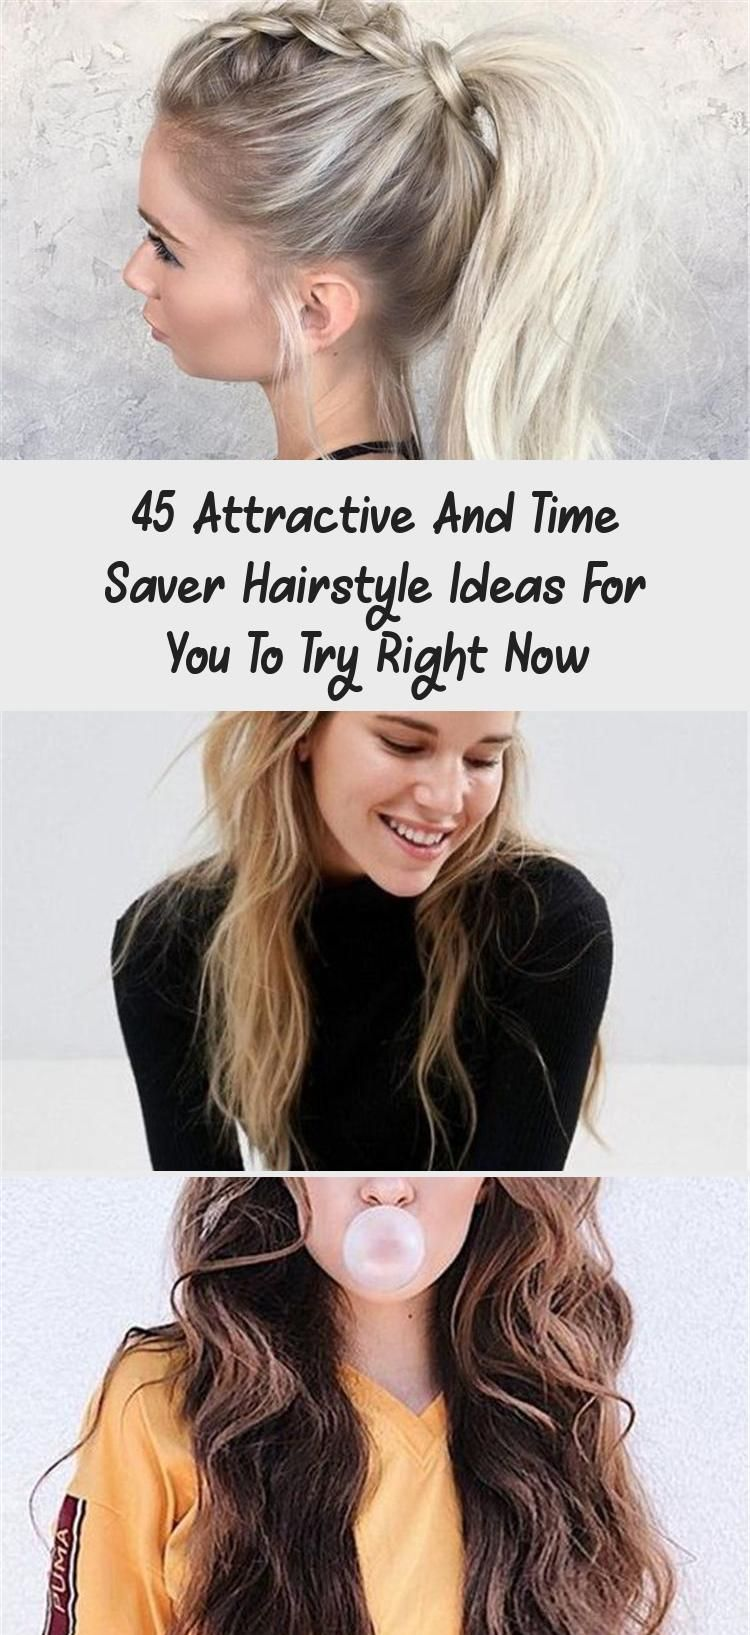 Photo of 45 Attractive And Time Saver Hairstyle Ideas For You To Try Right Now – Pinokyo …